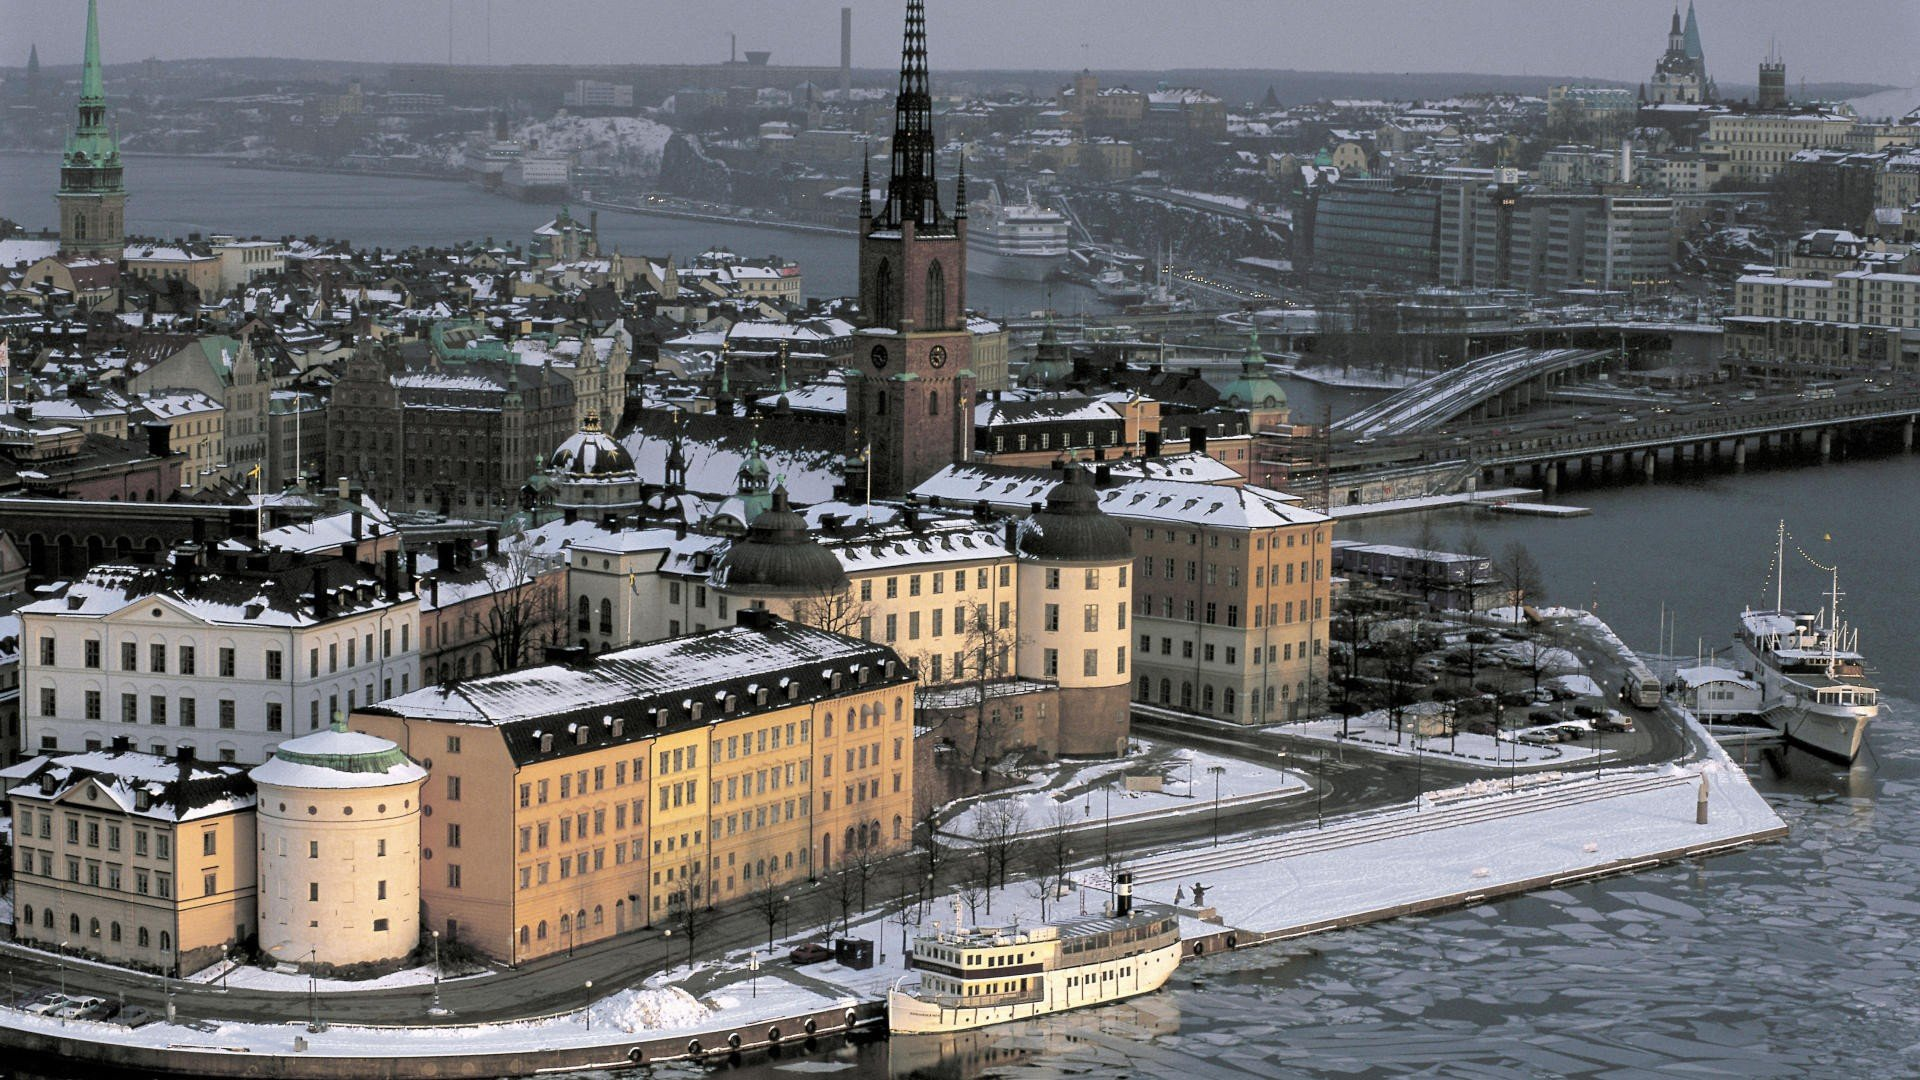 stockholm in the snow - photo #36